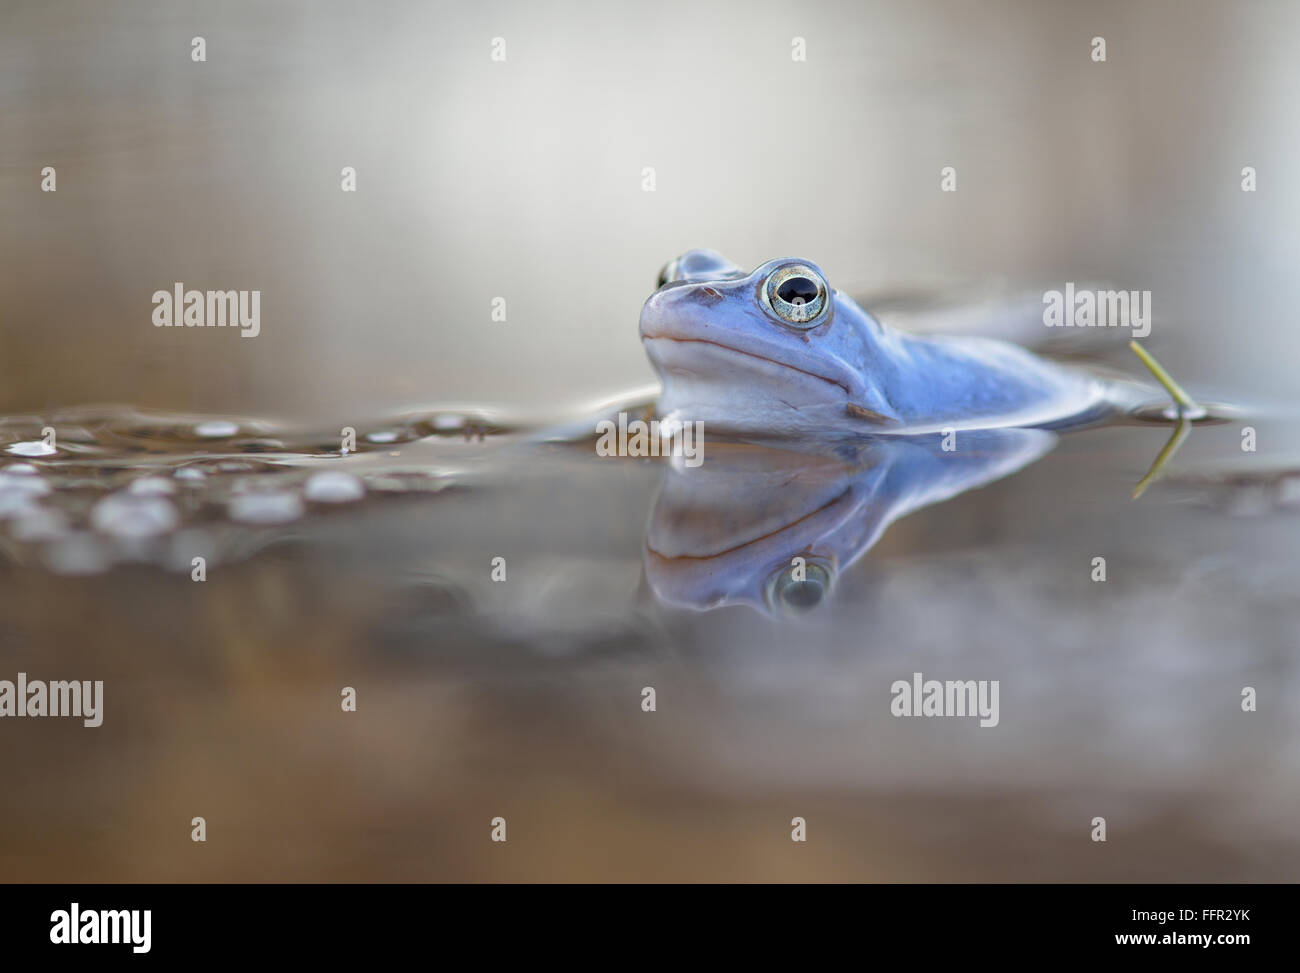 Moor frog (Rana arvalis), blue coloured male with spawn, during mating season, in spawning waters, Elbe, Saxony - Stock Image